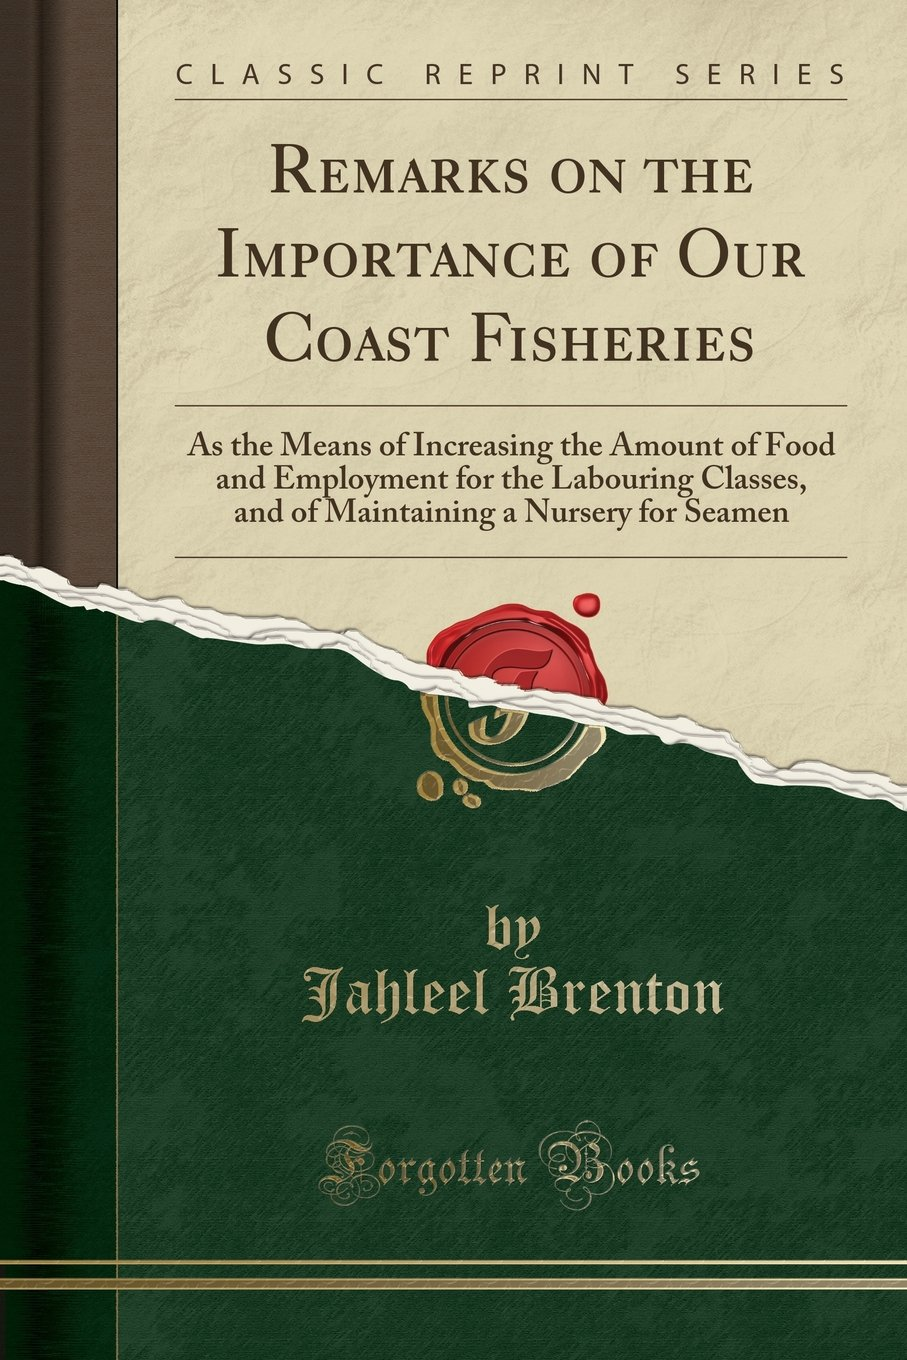 Read Online Remarks on the Importance of Our Coast Fisheries: As the Means of Increasing the Amount of Food and Employment for the Labouring Classes, and of Maintaining a Nursery for Seamen (Classic Reprint) ebook